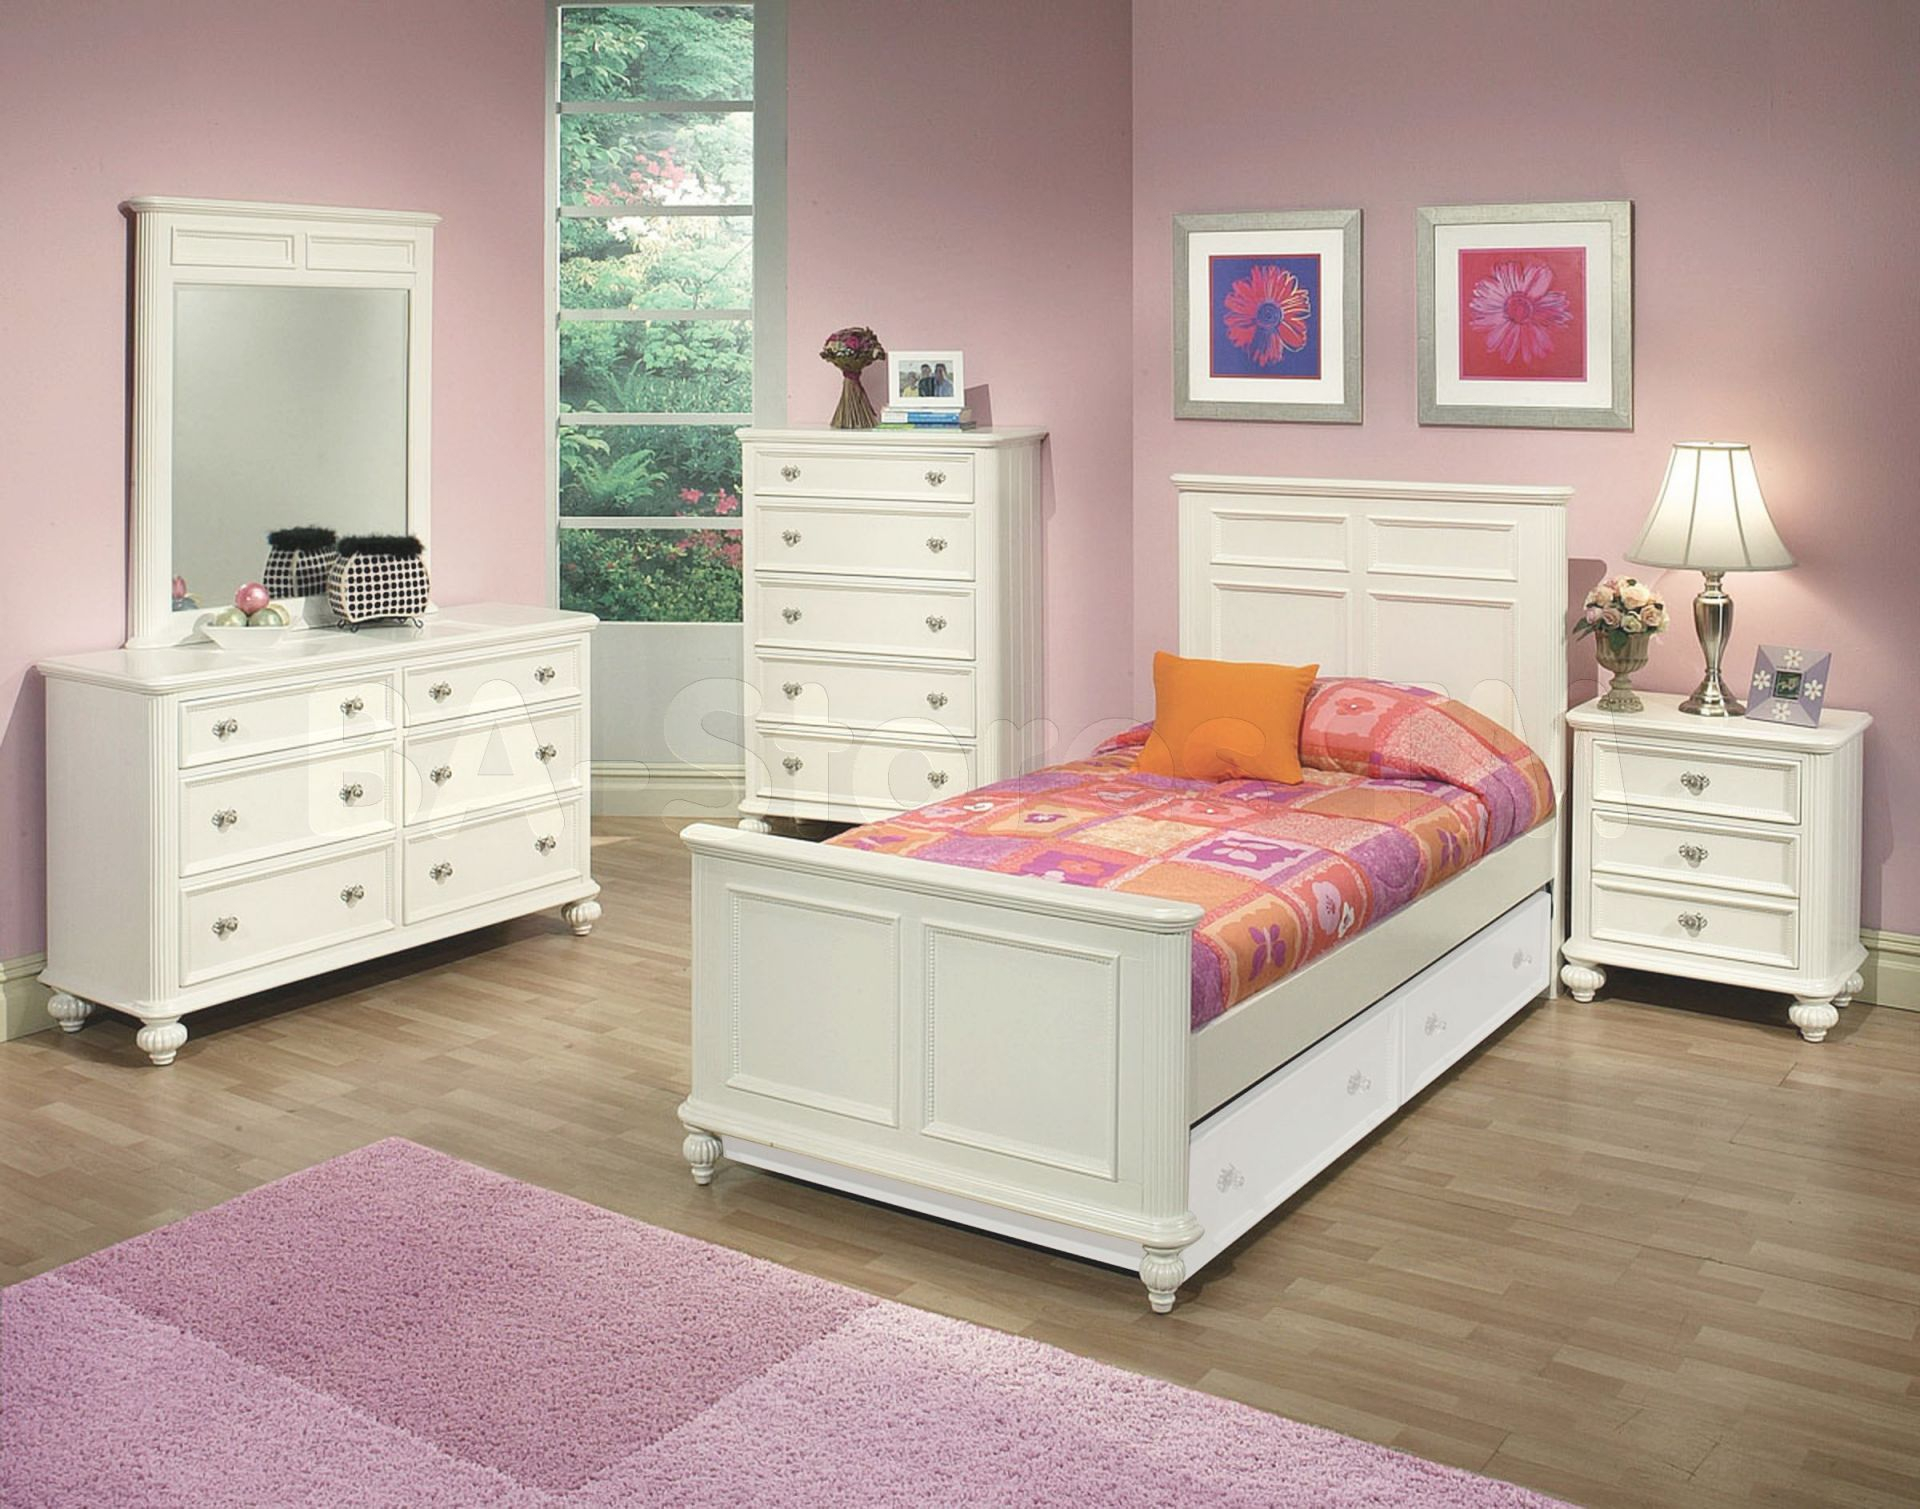 Bedroom Design : Childrens Furniture Sets Uv Cheap Ways To with Teen Bedroom Furniture Sets